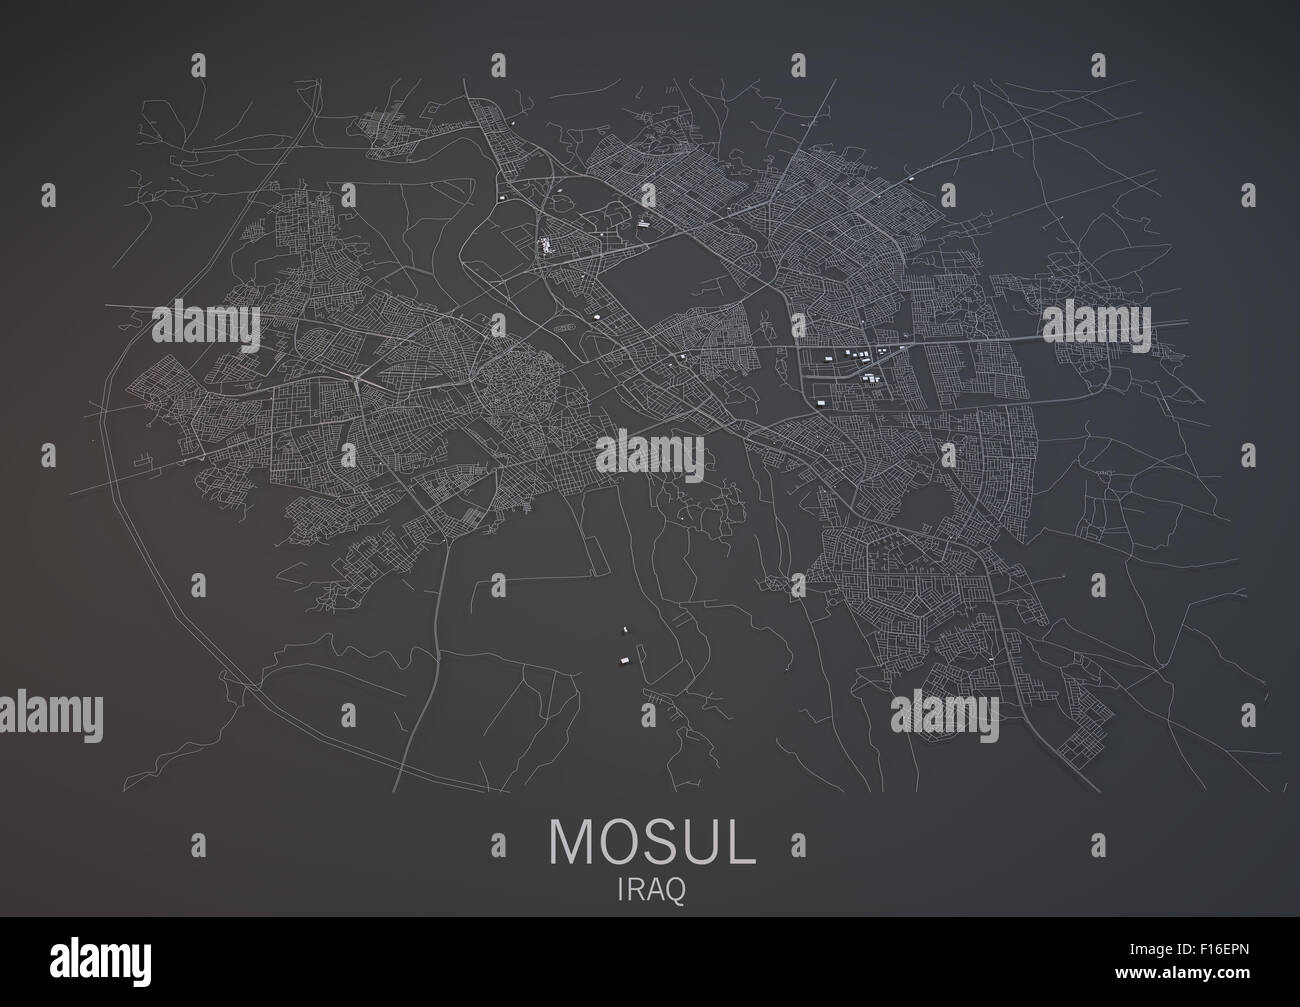 Map Of Mosul Iraq Satellite View Map In D Black And White - Satellite view